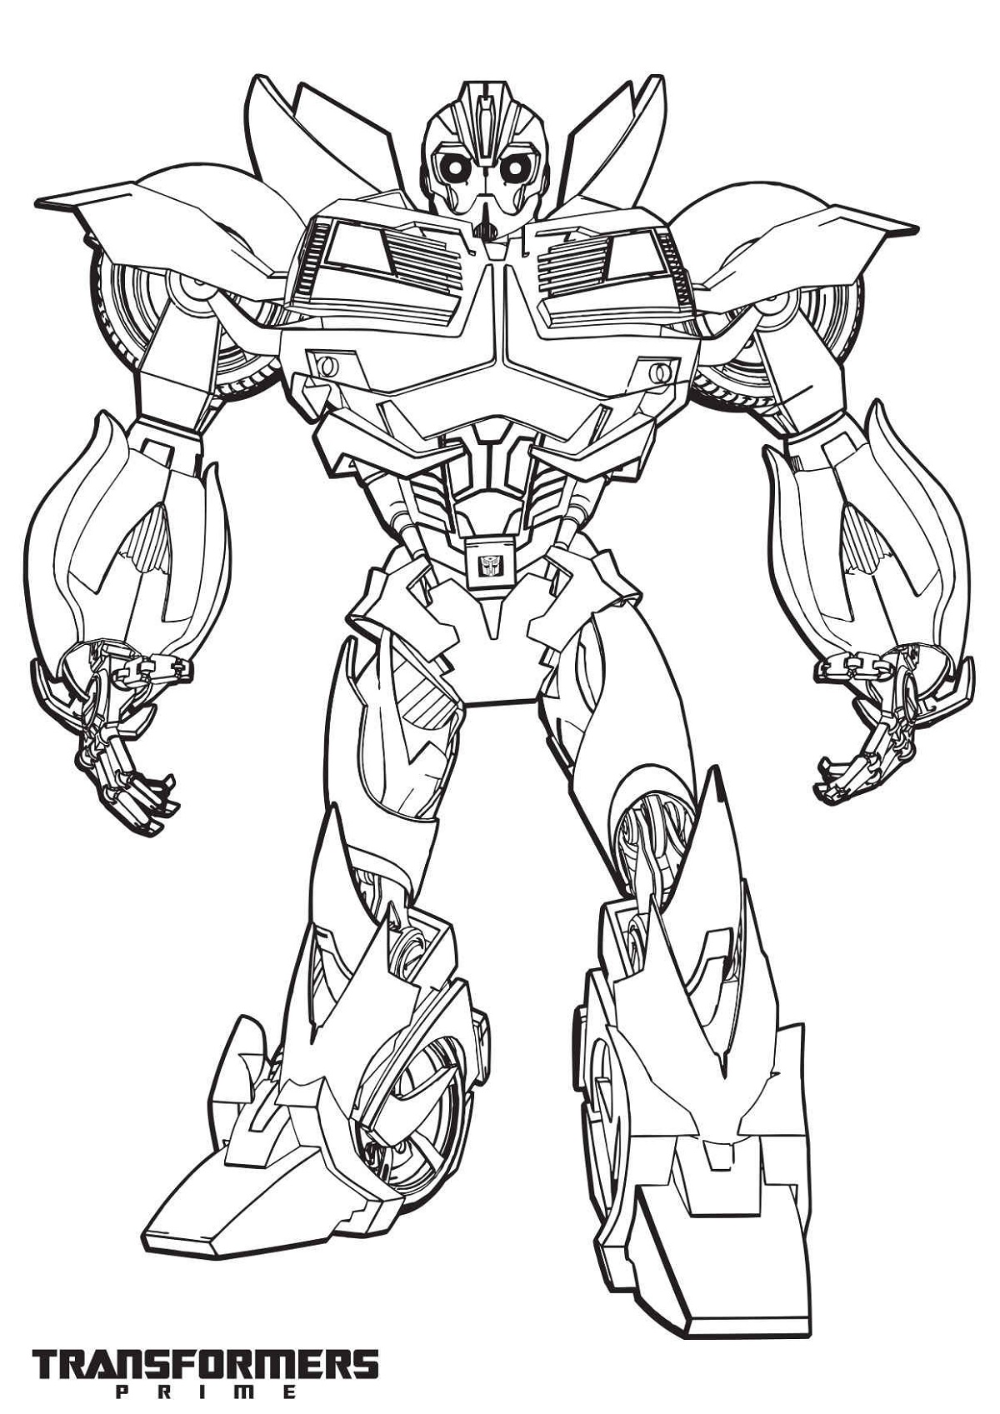 Bumblebee Transformer Coloring Page Bee Coloring Pages Superhero Coloring Pages Cartoon Coloring Pages